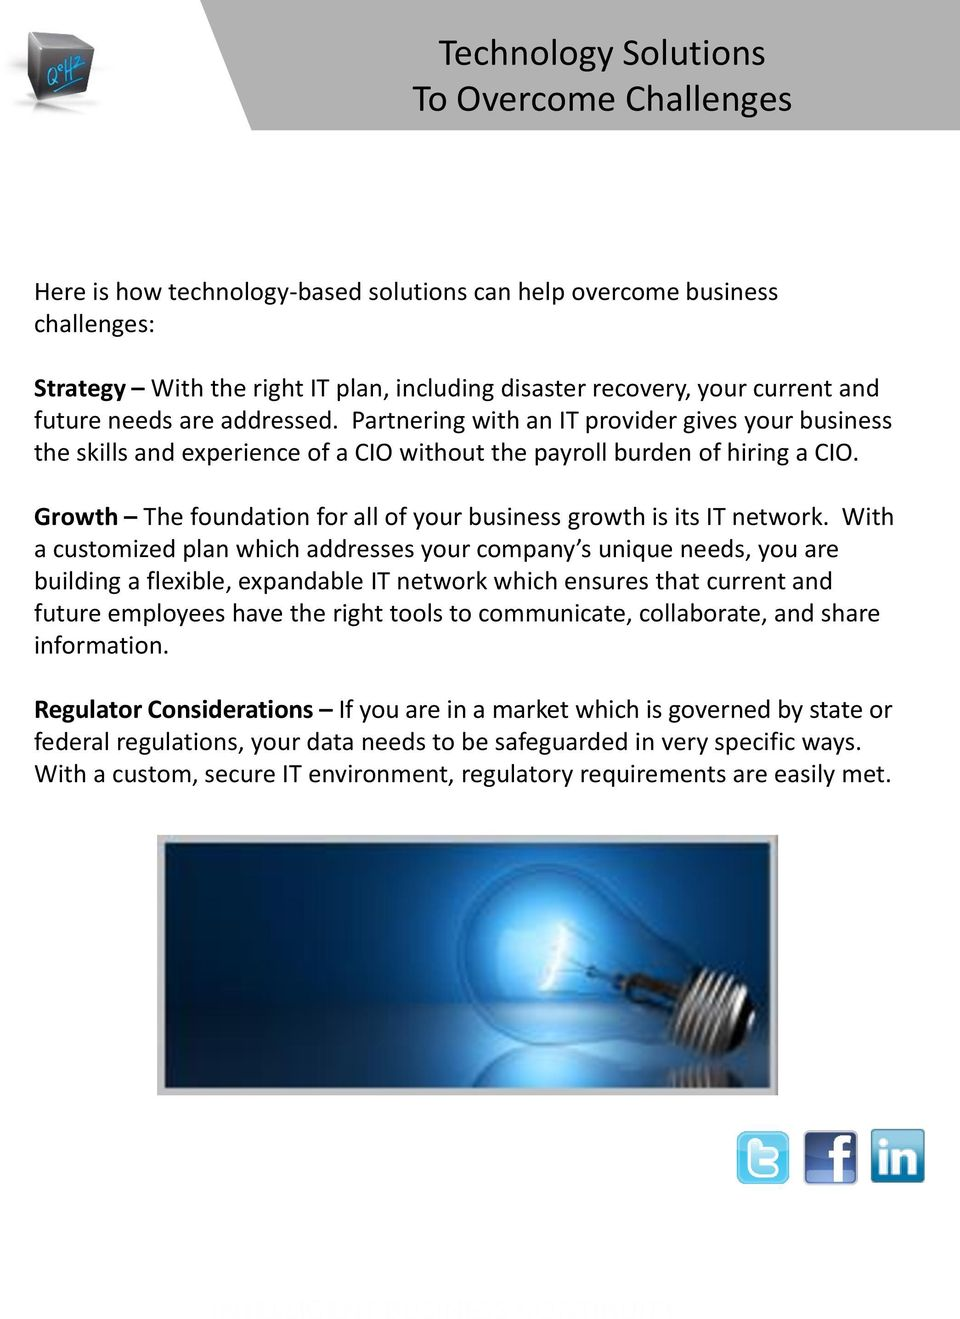 Growth The foundation for all of your business growth is its IT network.